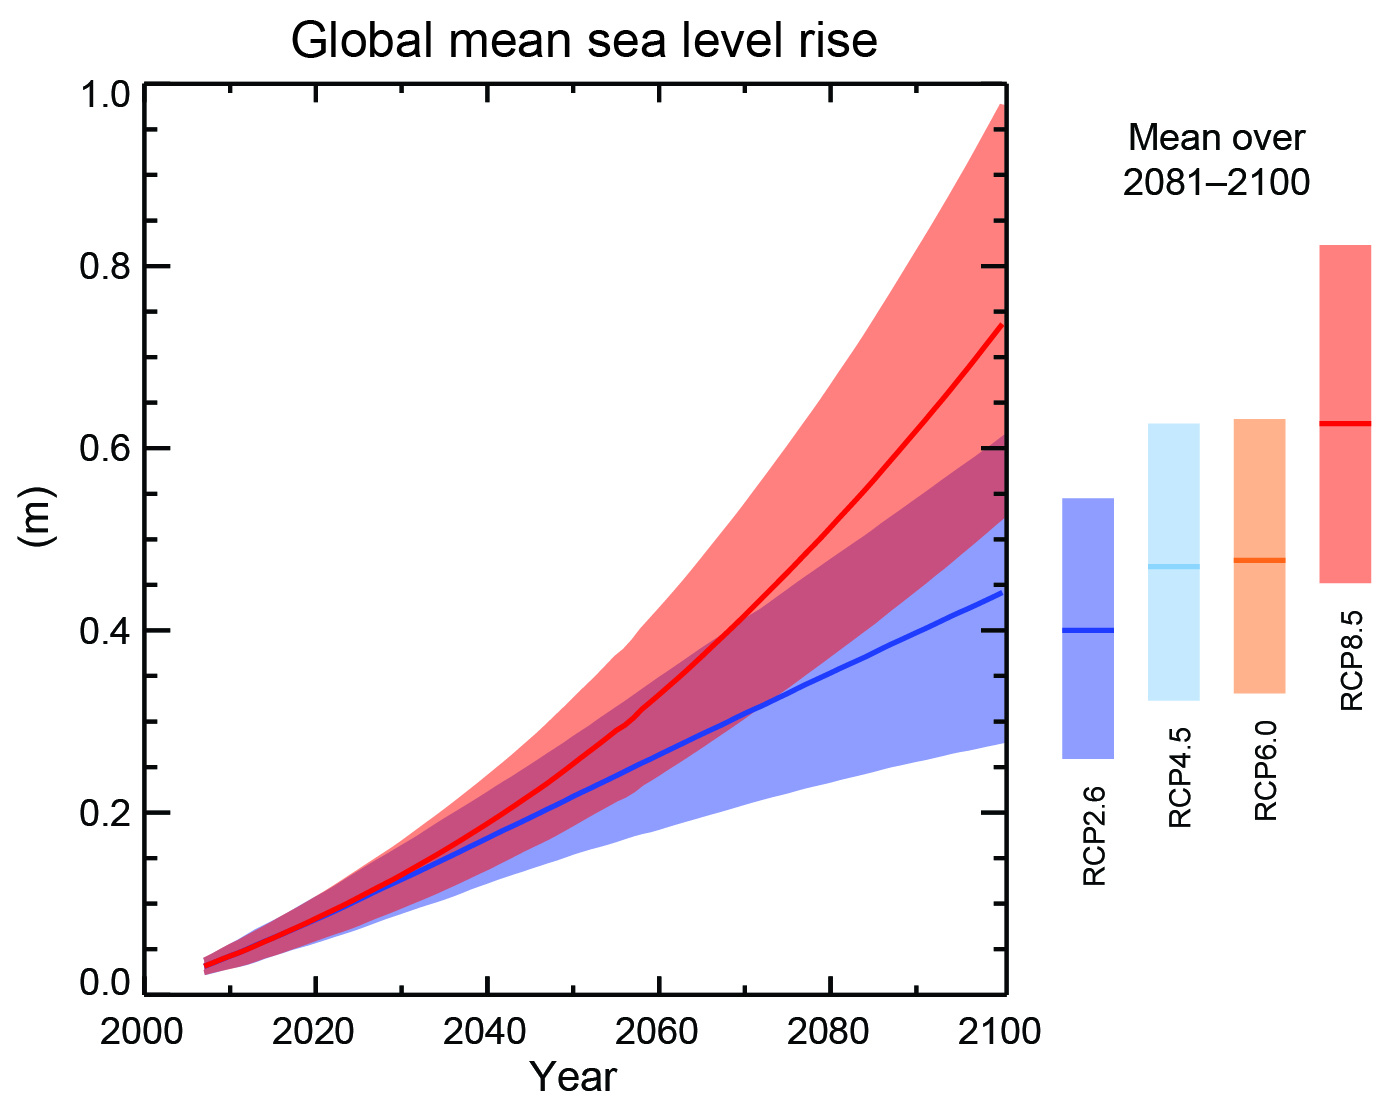 Global sea level rise projected for the 21st century. The blue and red curves show projections for scenarios RCP2.6 and RCP8.5, respectively. The shading indicates the likely (66-100%) uncertainty range. Bars on the right show the 2081-2000 averages for four scenarios. From ipcc.ch.